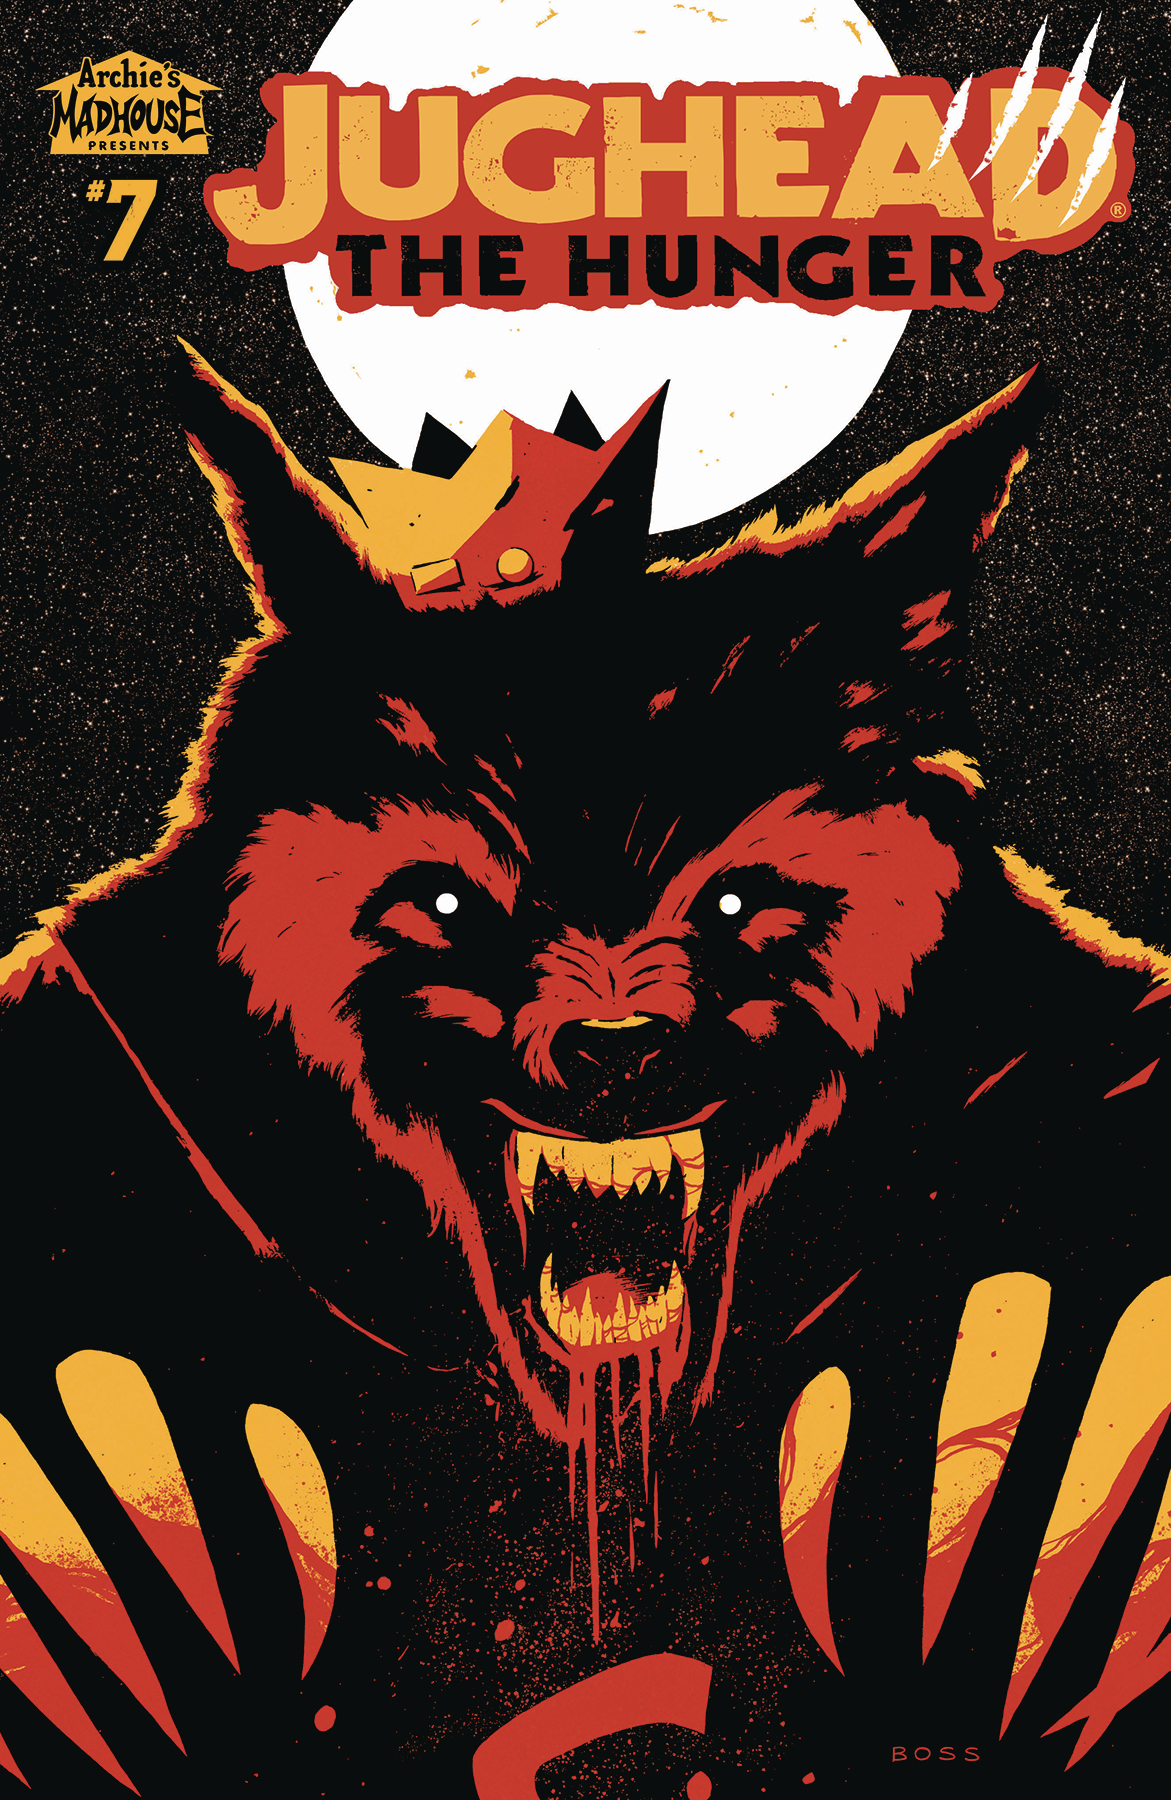 JUGHEAD THE HUNGER #7 CVR B BOSS (MR)